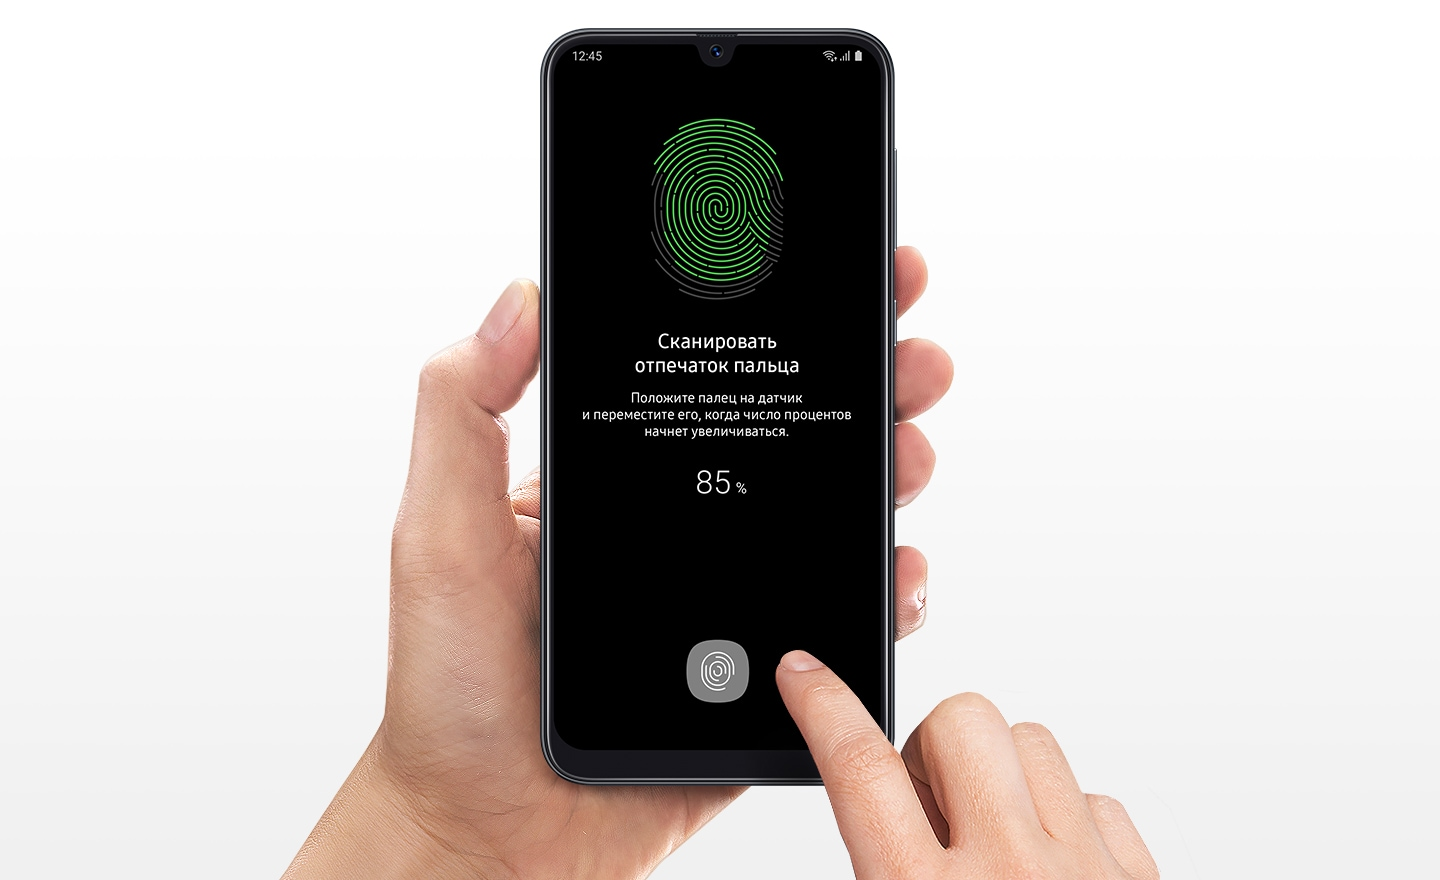 Your fingerprint is the key